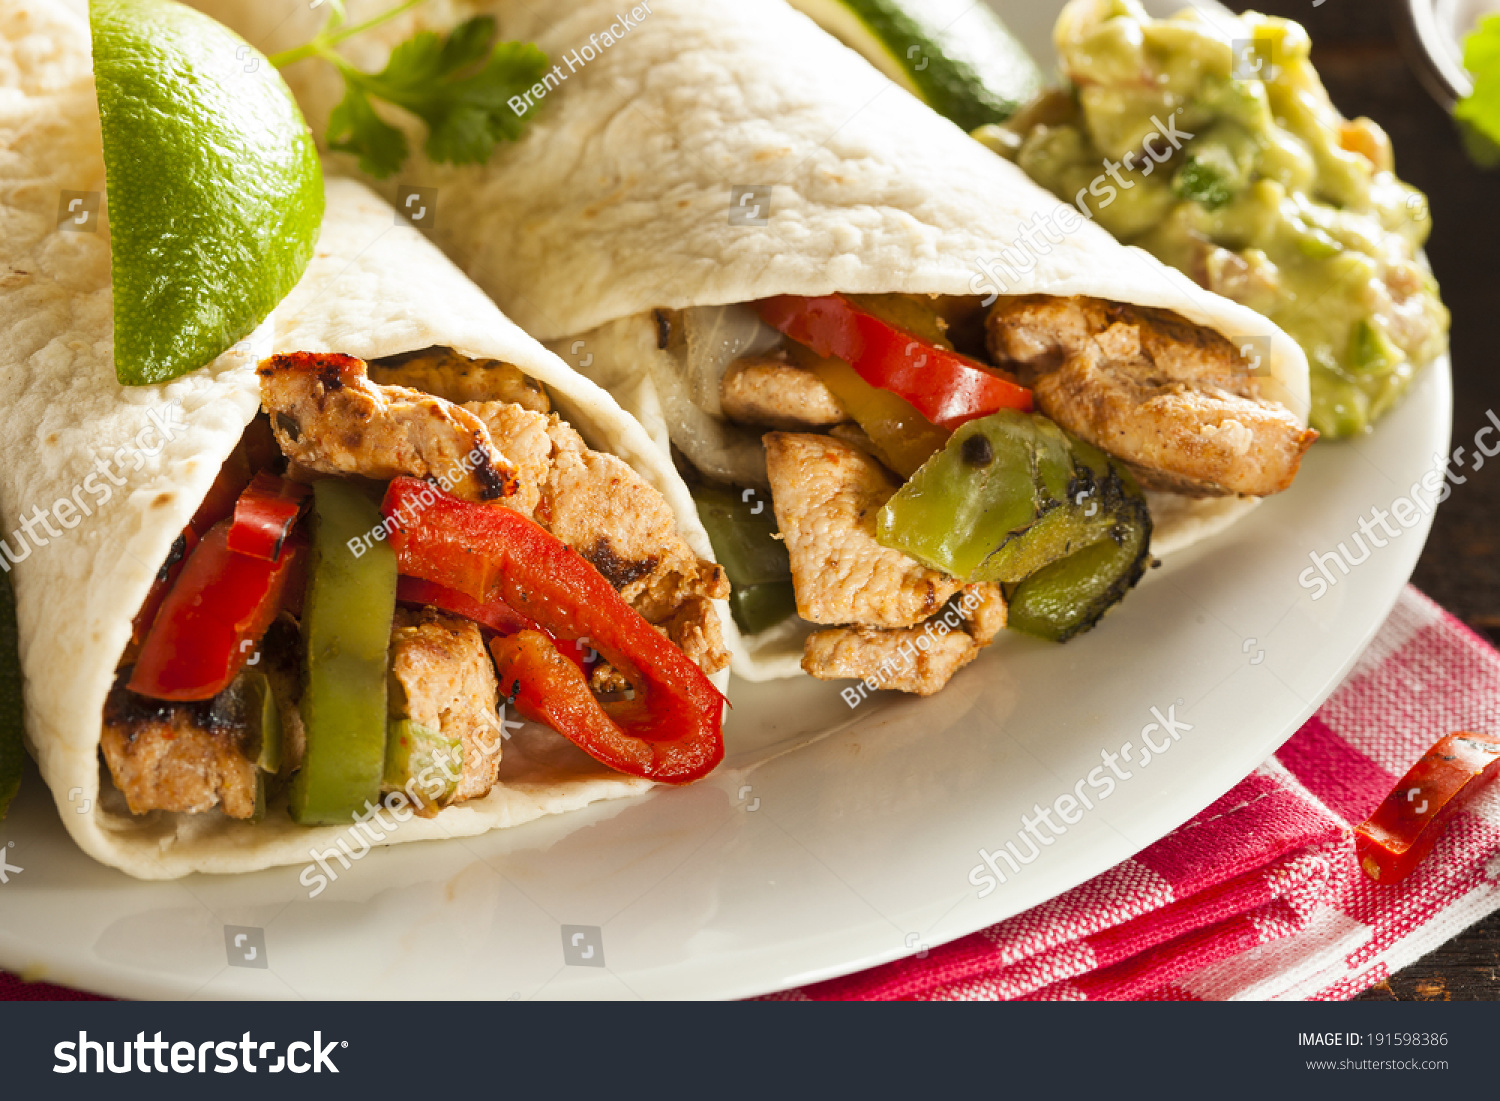 how to cook chicken fajitas with vegetables